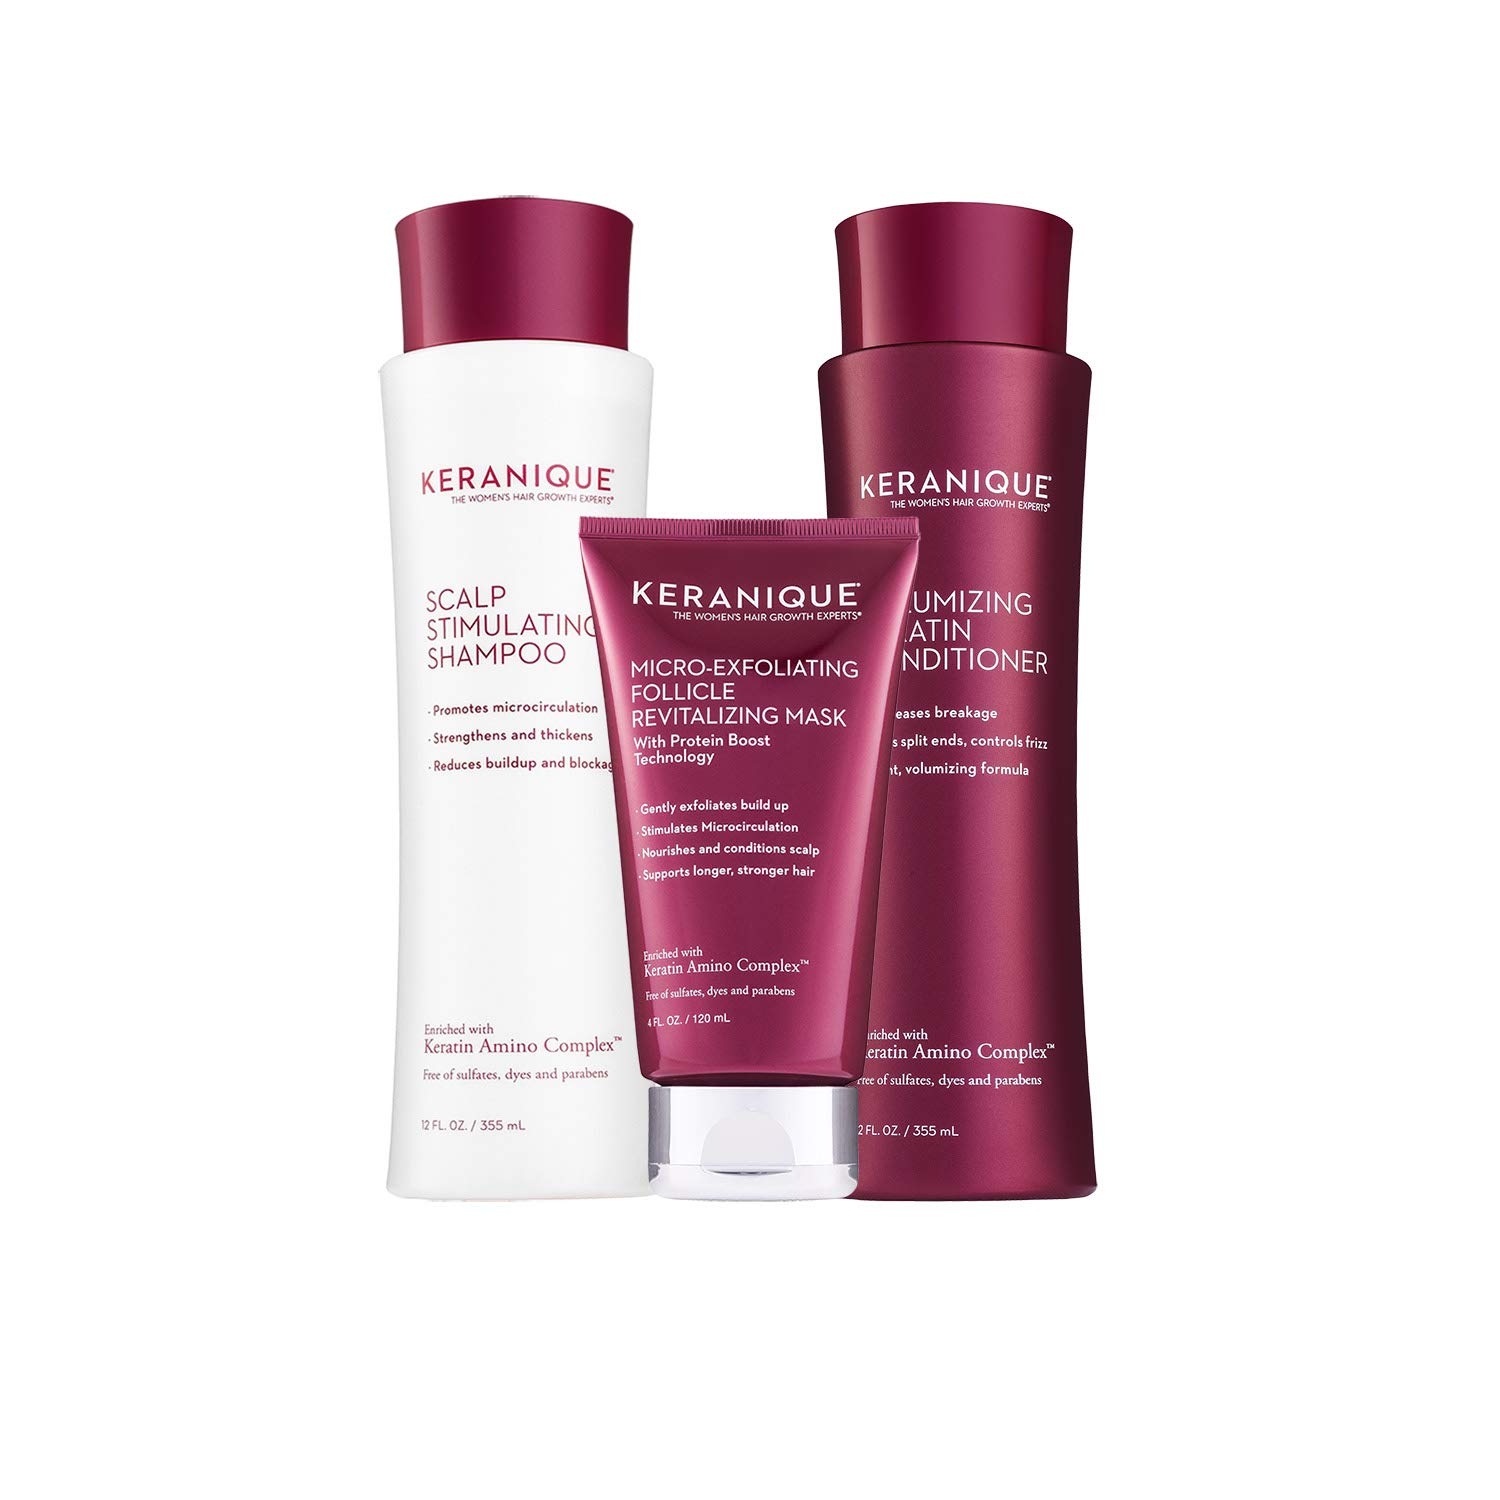 Keranique 60 Day Hair & Scalp Mask Kit | Shampoo, Conditioner and Follicle Revitalizing Mask | Keratin Amino Complex | Free of Sulfates, Dyes, and Parabens | Strengthens and Fortifies Thinning Hair